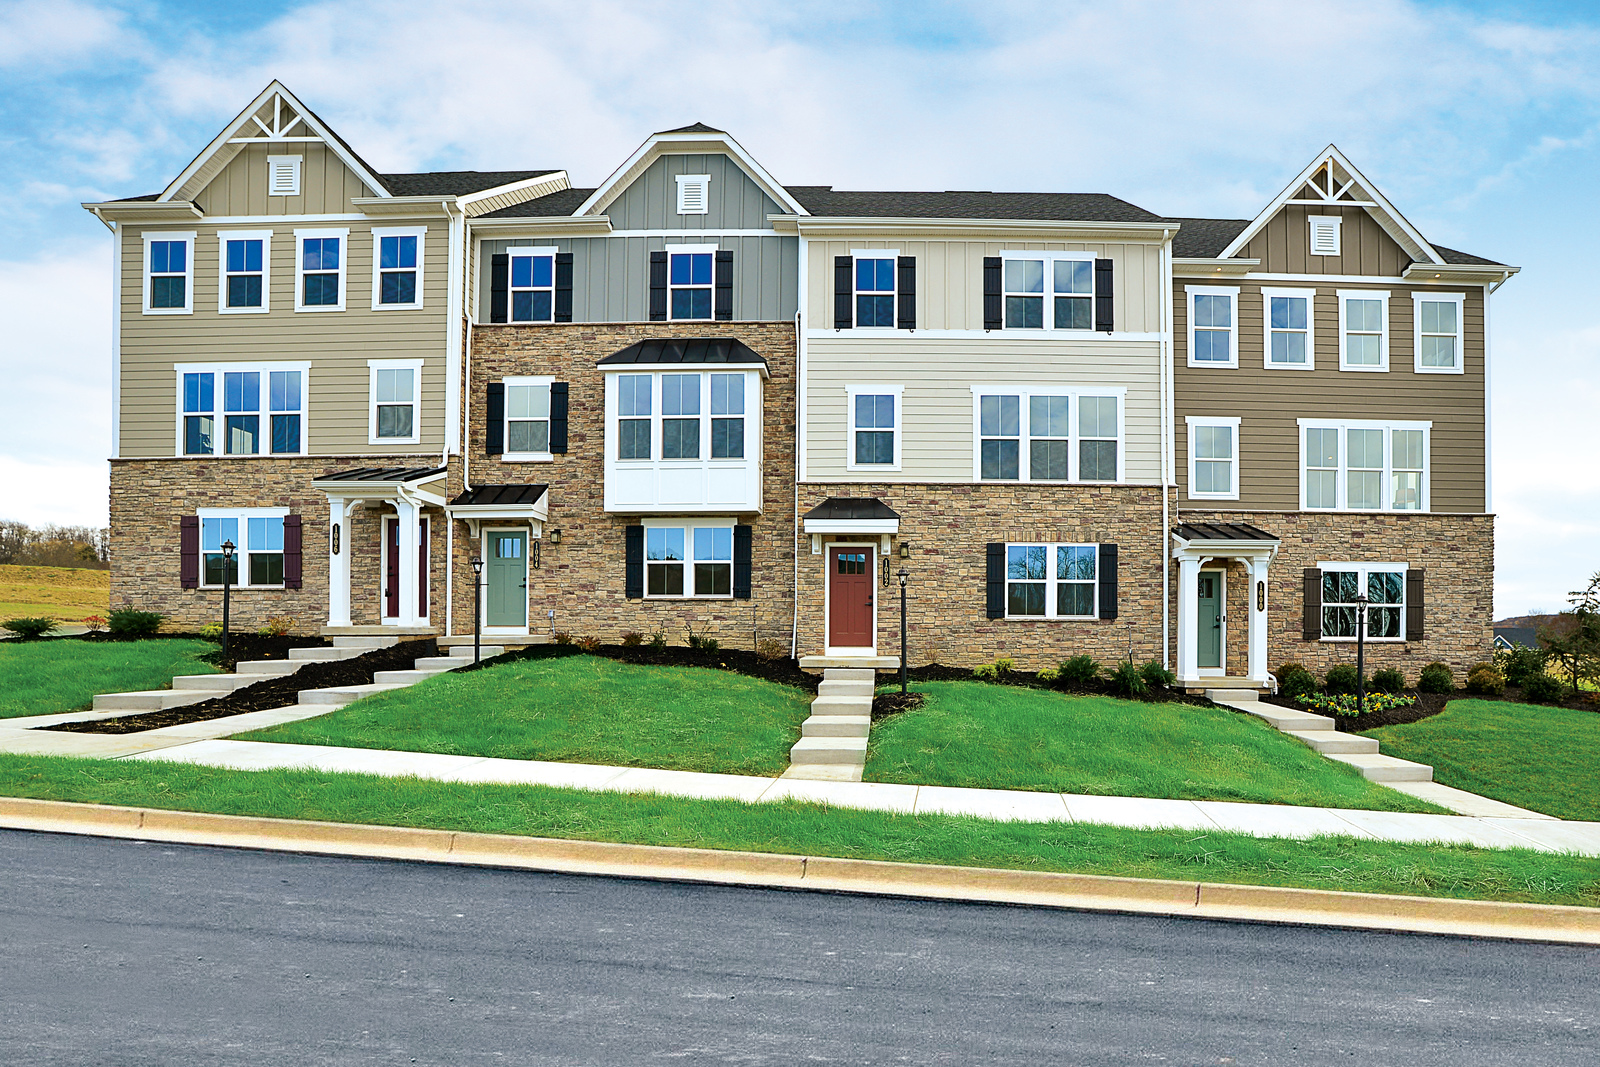 New Homes for sale at Townhomes At Middlesex Crossing in